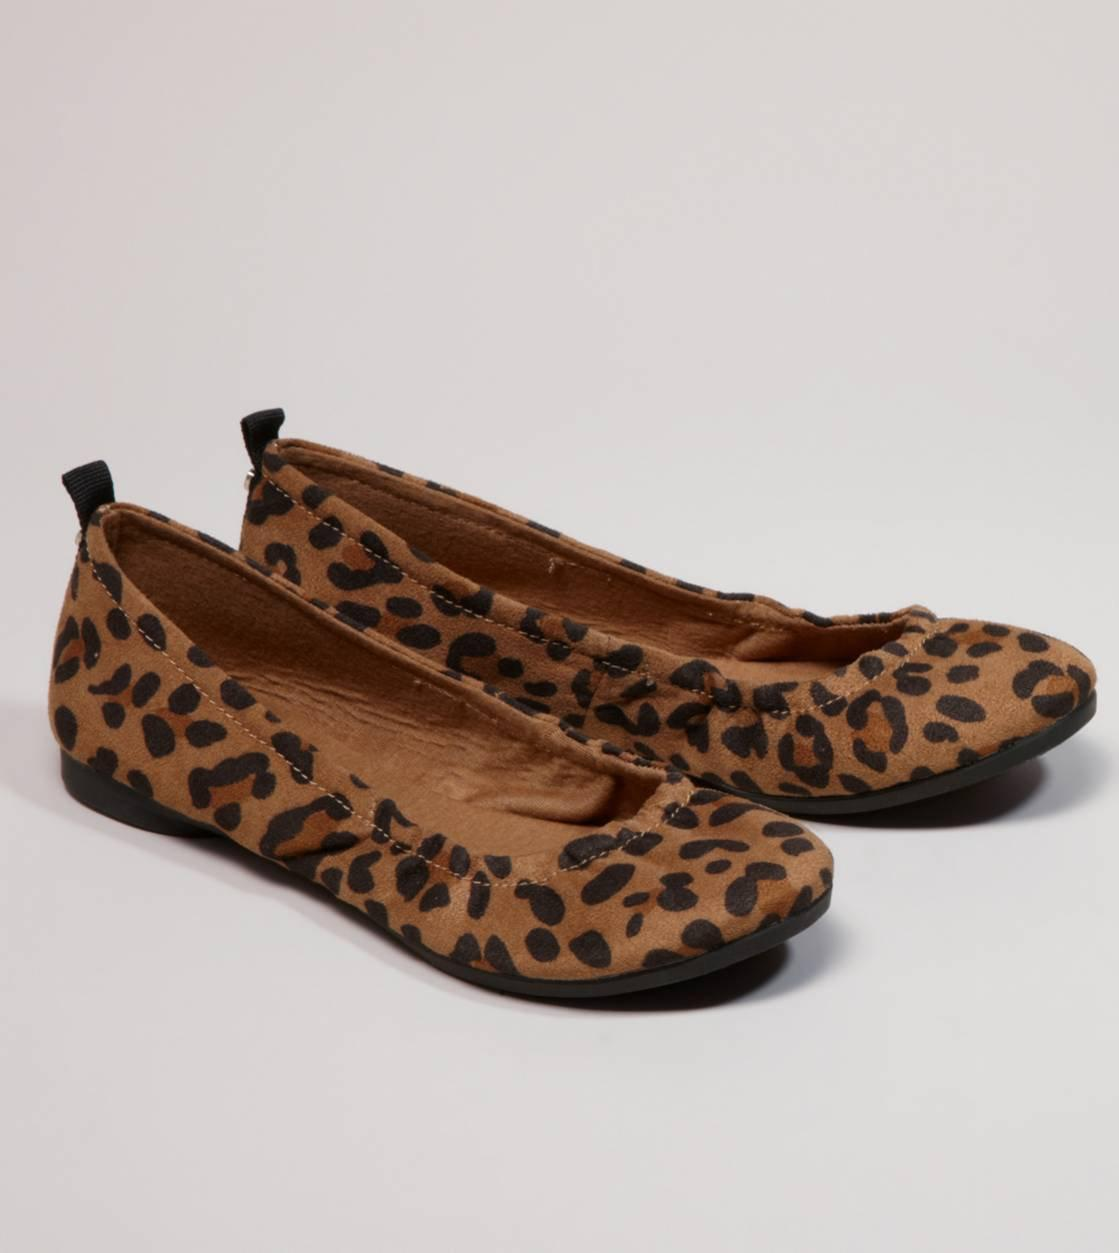 Get the best deals on betsey johnson leopard flats and save up to 70% off at Poshmark now! Whatever you're shopping for, we've got it.